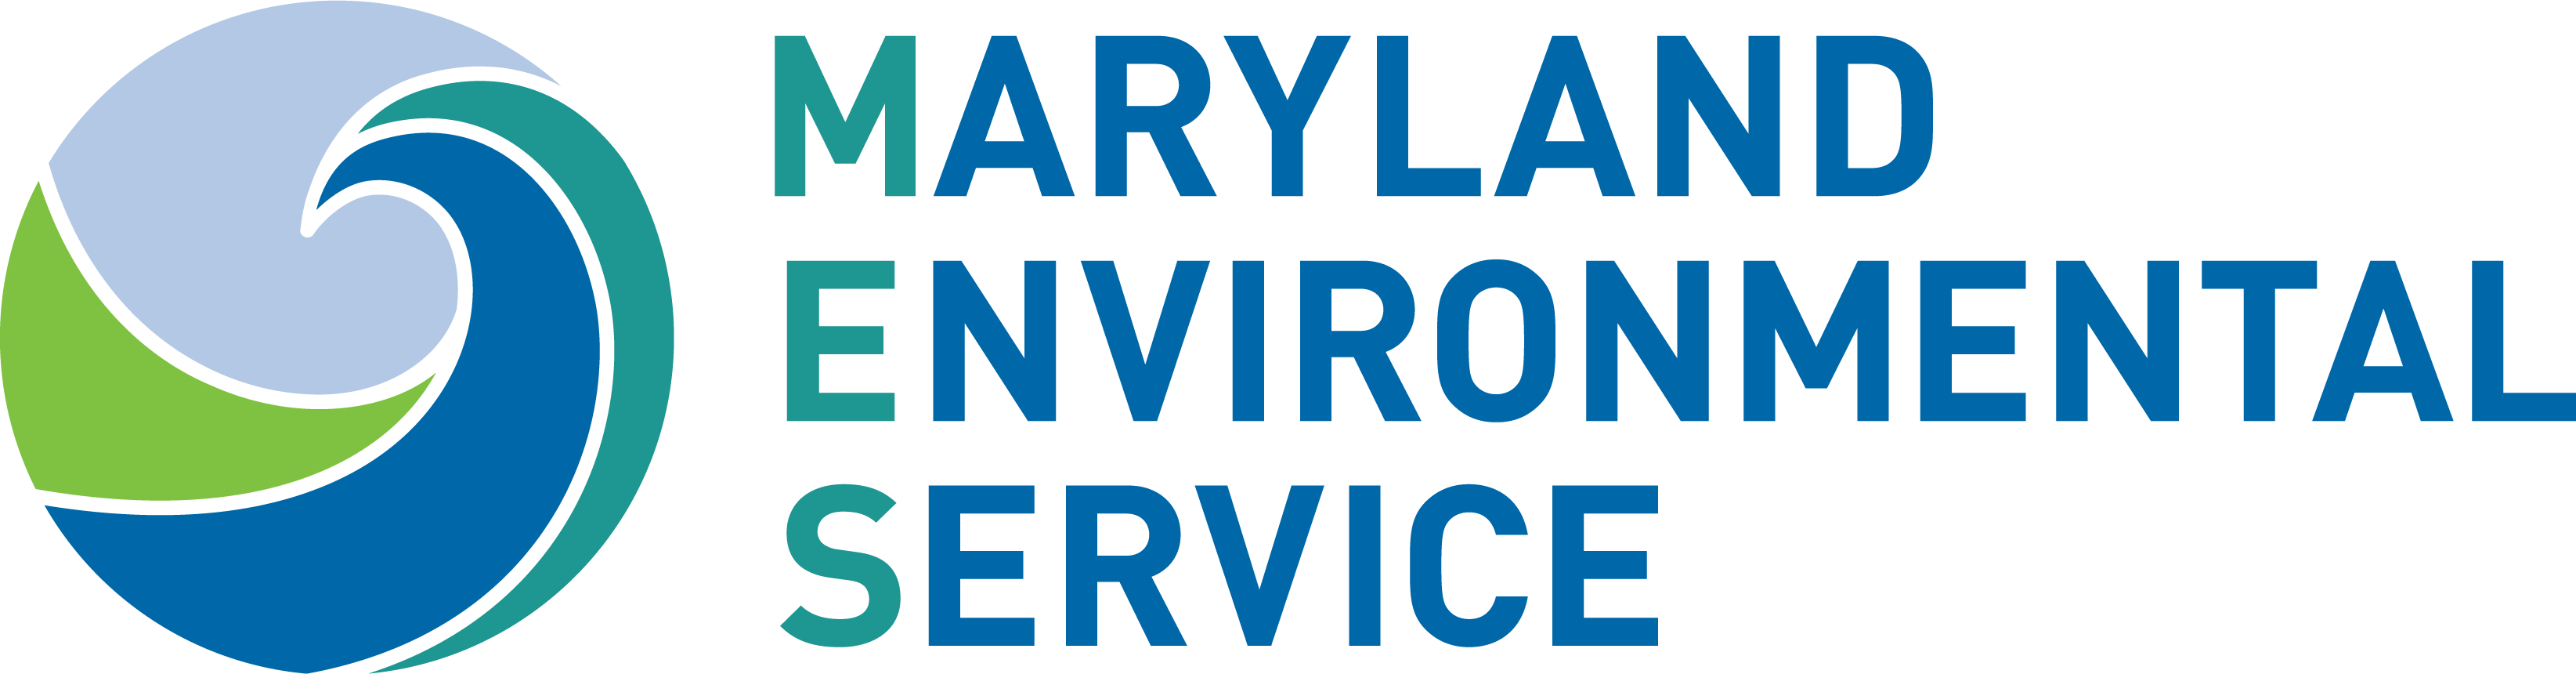 Maryland Environmental Service MES Logo